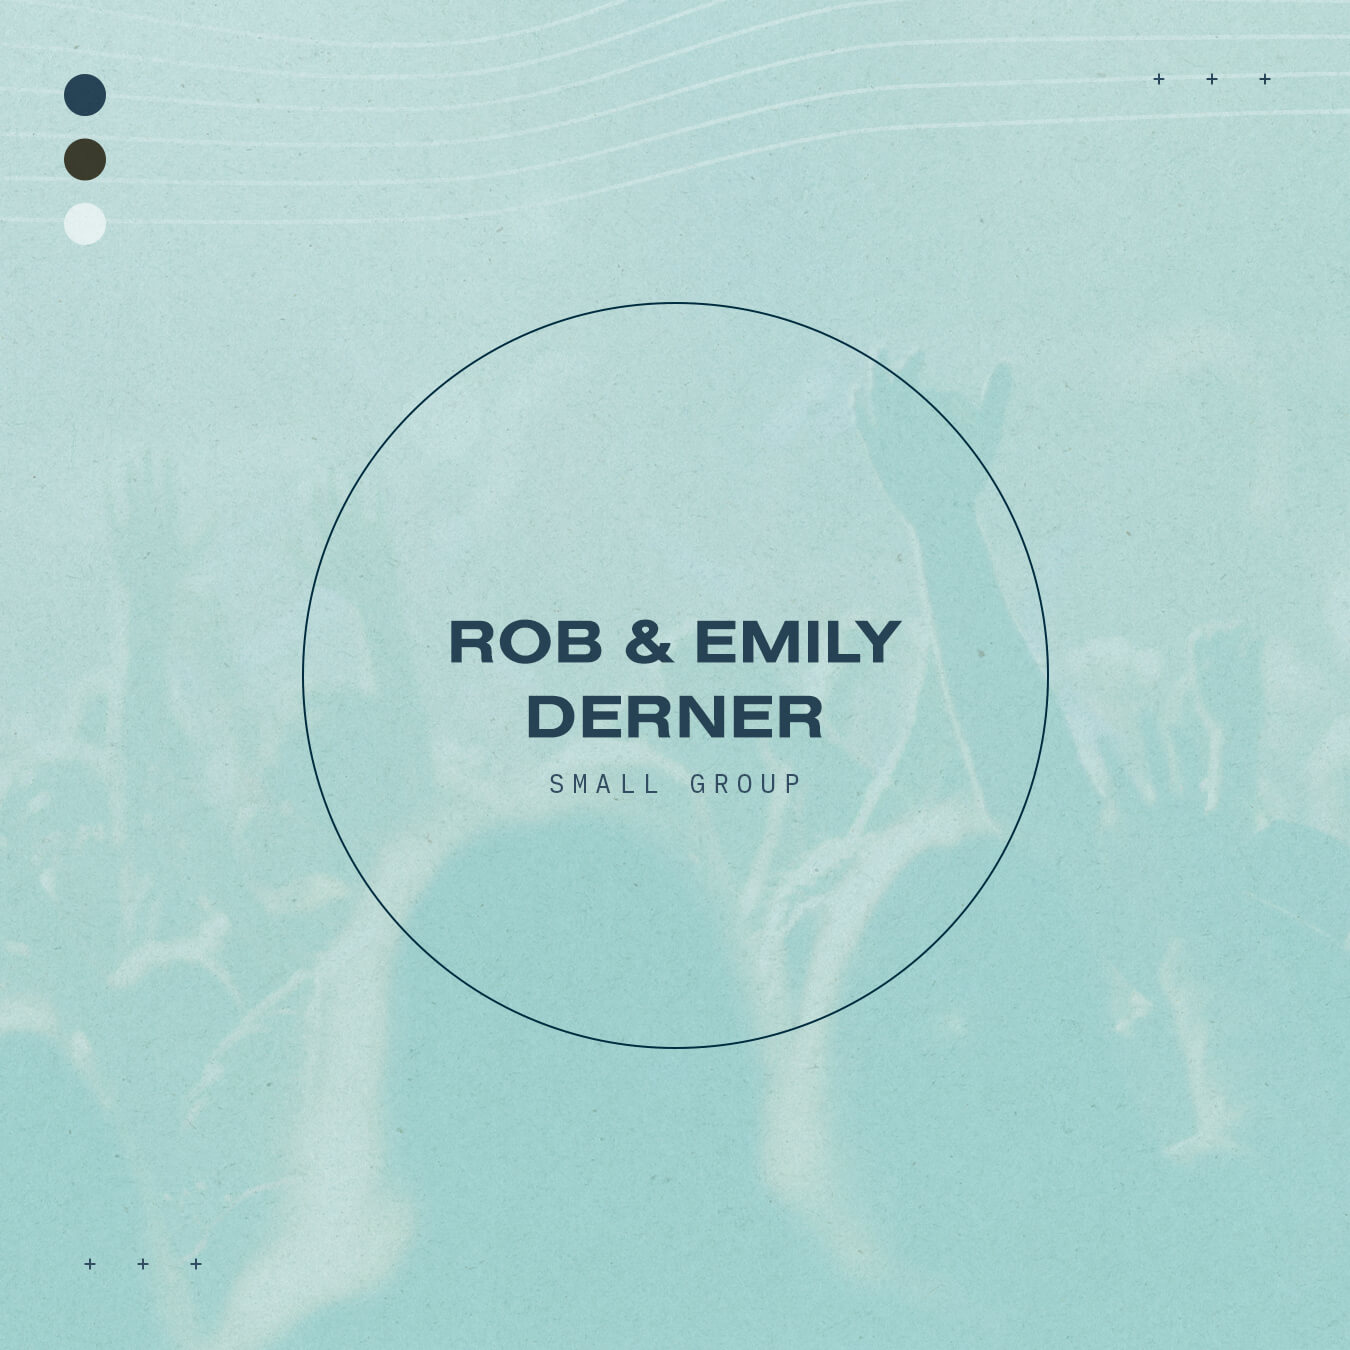 Rob and Emily Derner - Small Group